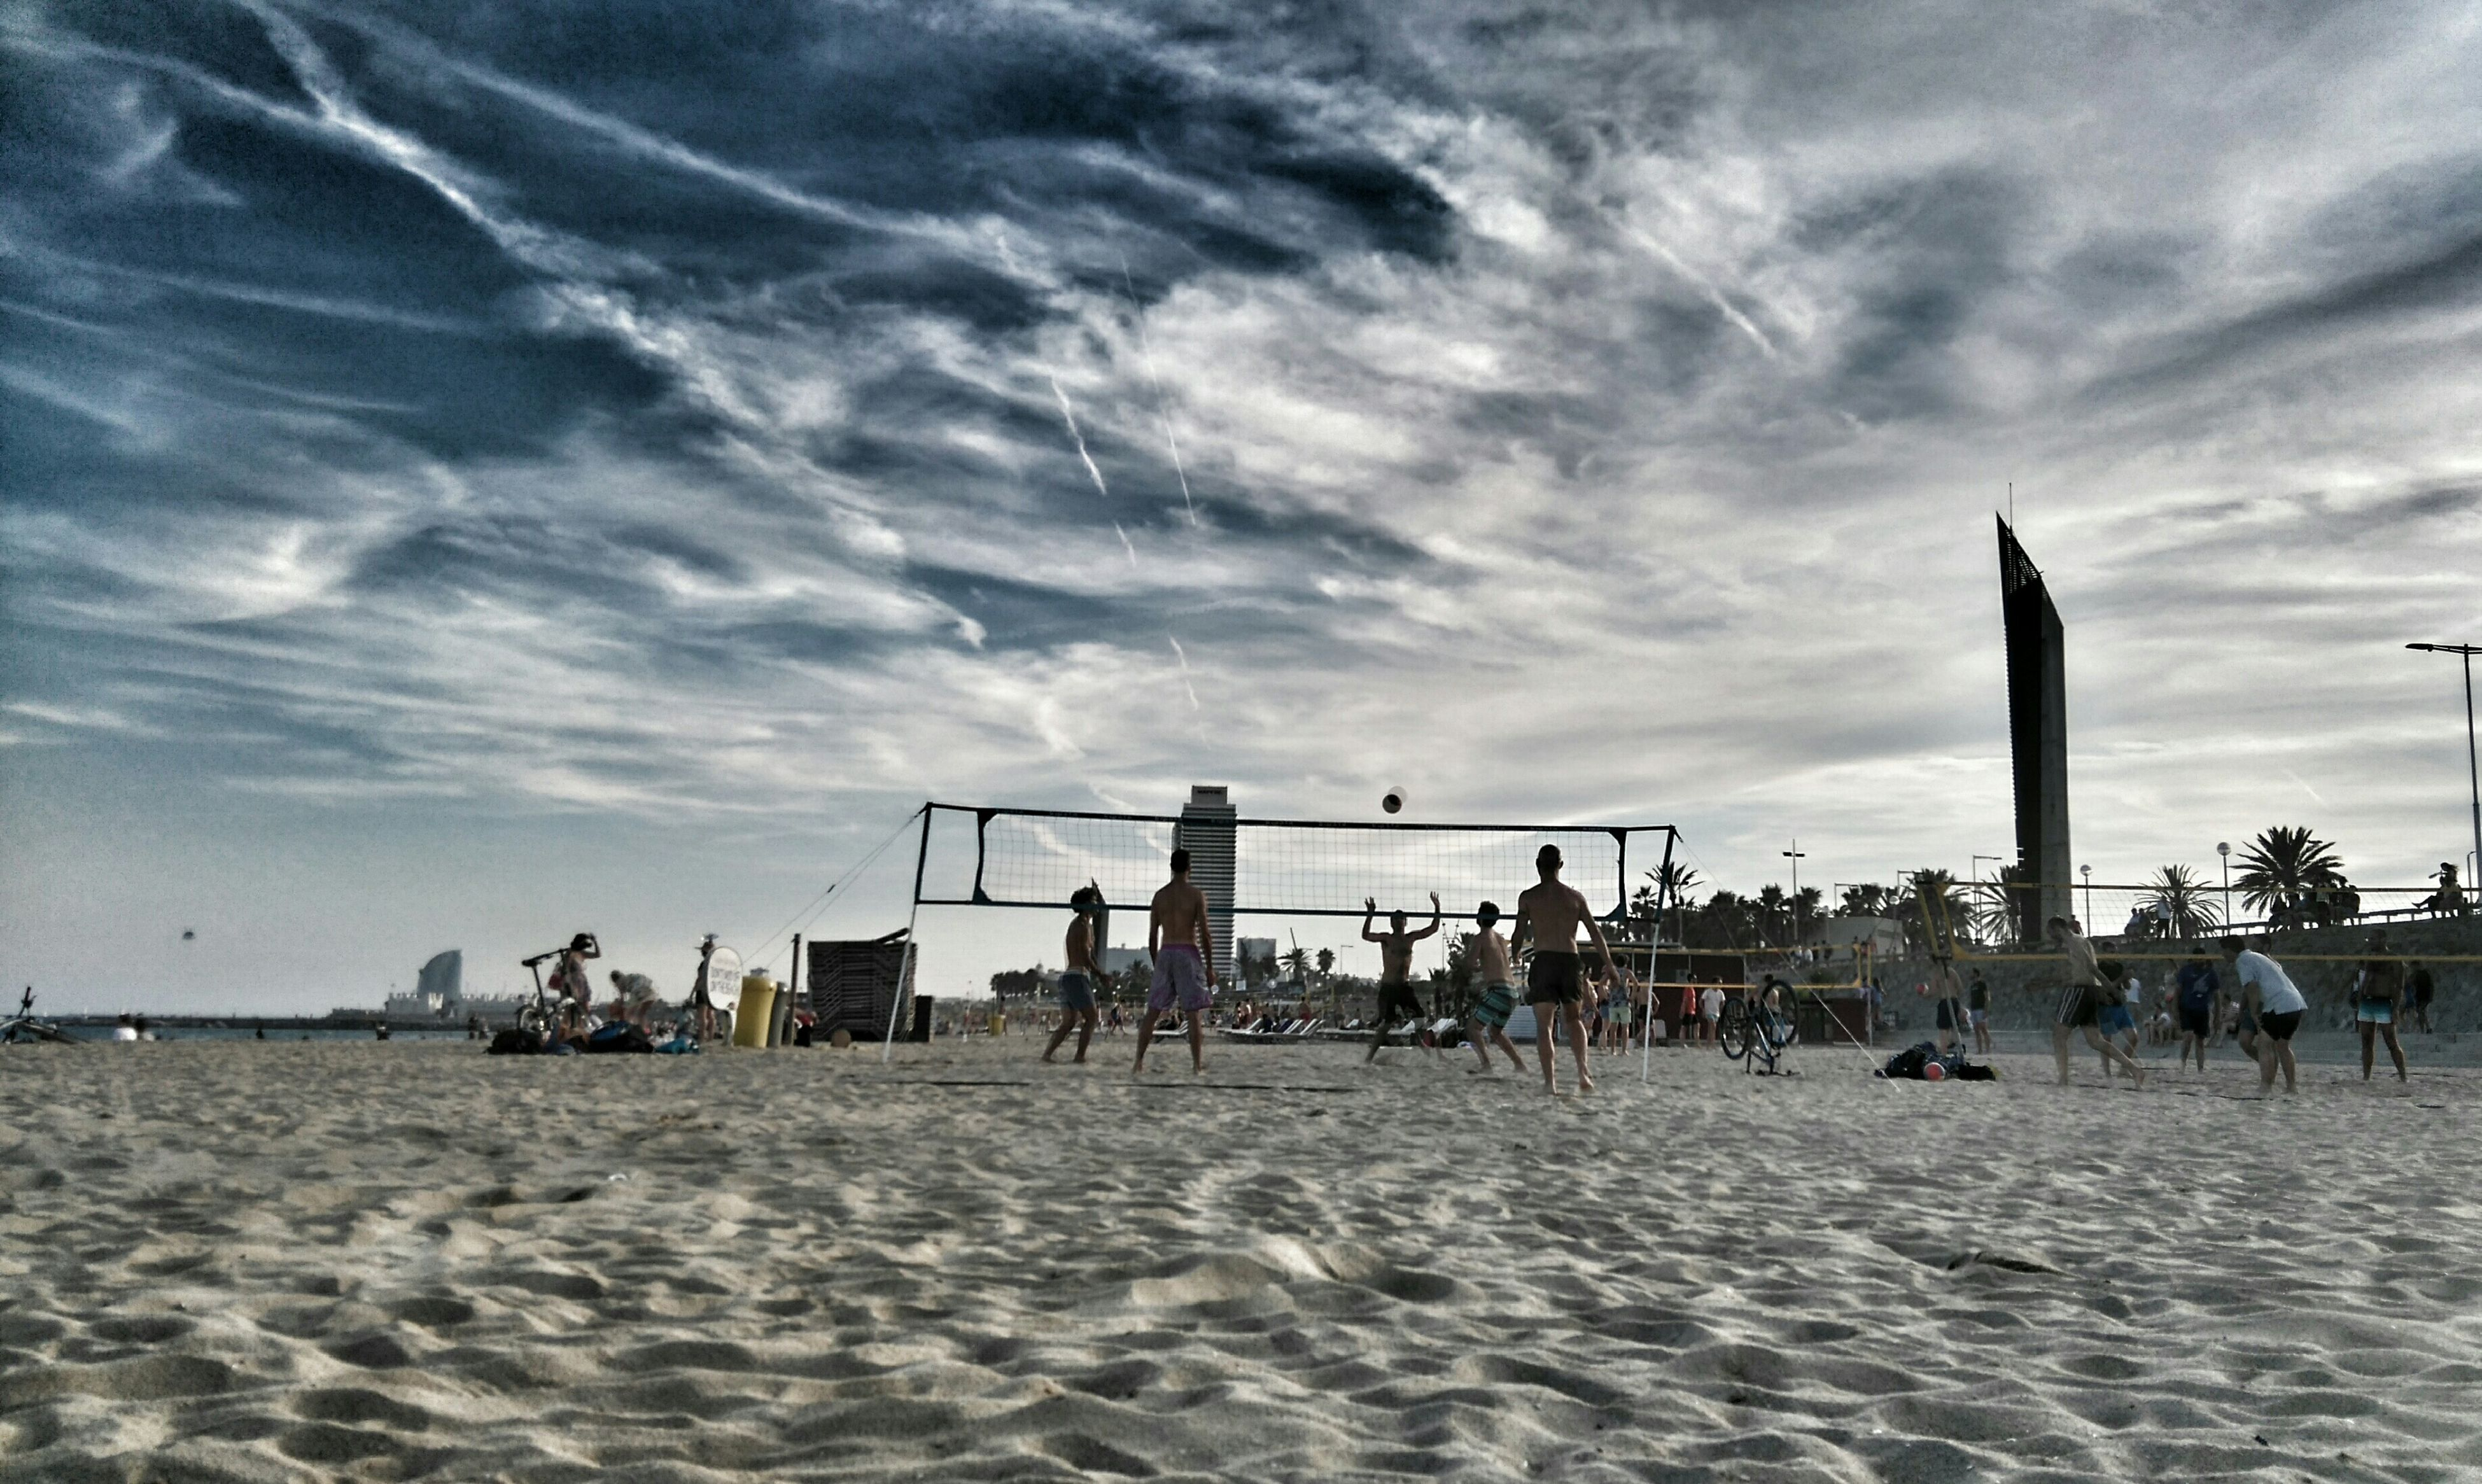 beach, sea, sand, sky, cloud - sky, large group of people, shore, water, vacations, built structure, incidental people, cloudy, horizon over water, cloud, scenics, mixed age range, nature, leisure activity, tourism